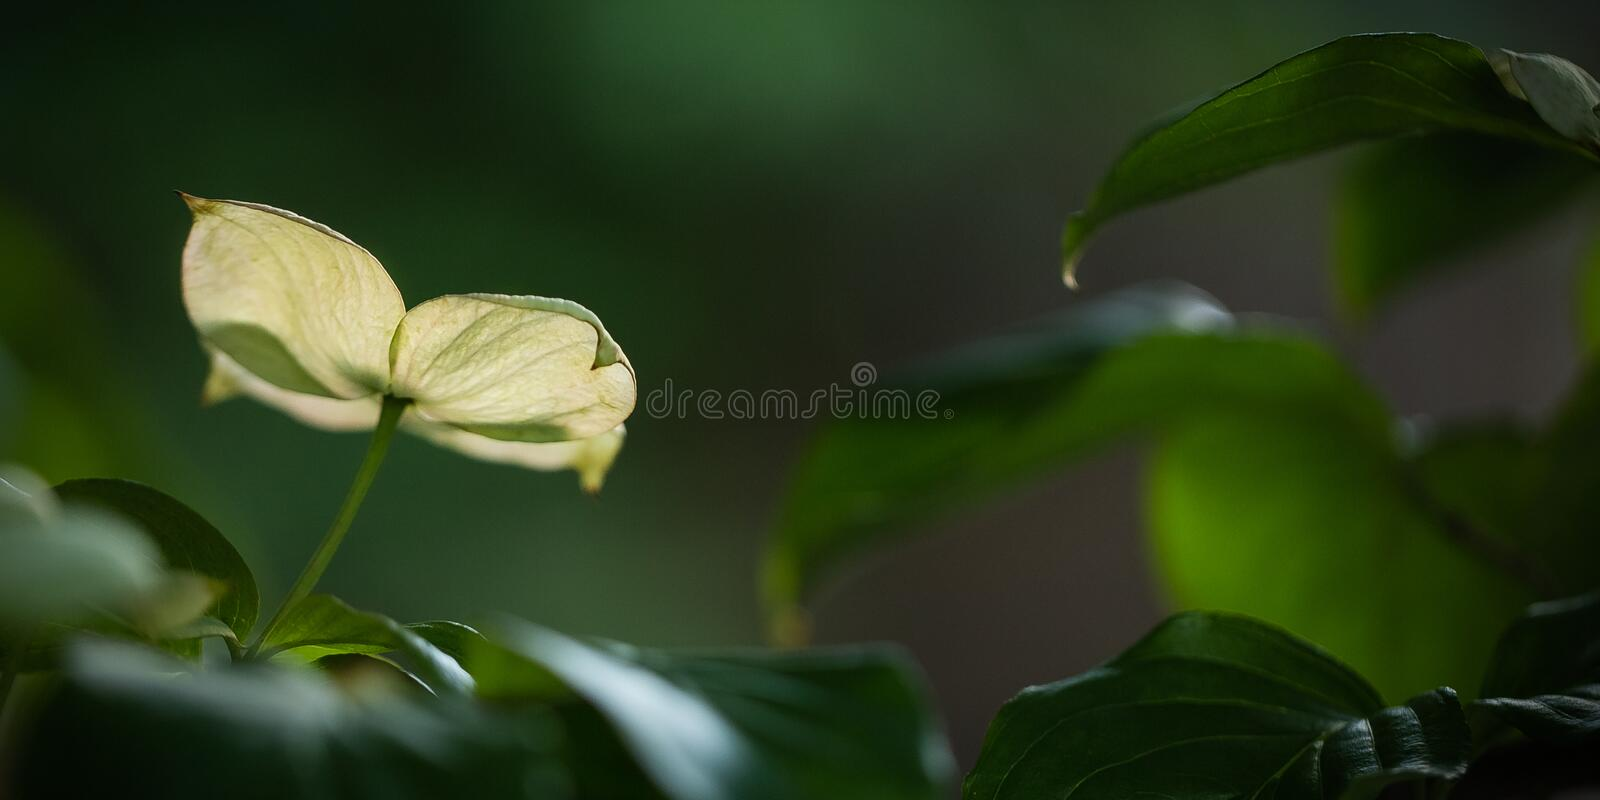 A single creamy white Dogwood blossom glows among green leaves. Surrounded by dark green leaves, a single dogwood blossom glows a beautiful creamy-white royalty free stock photo